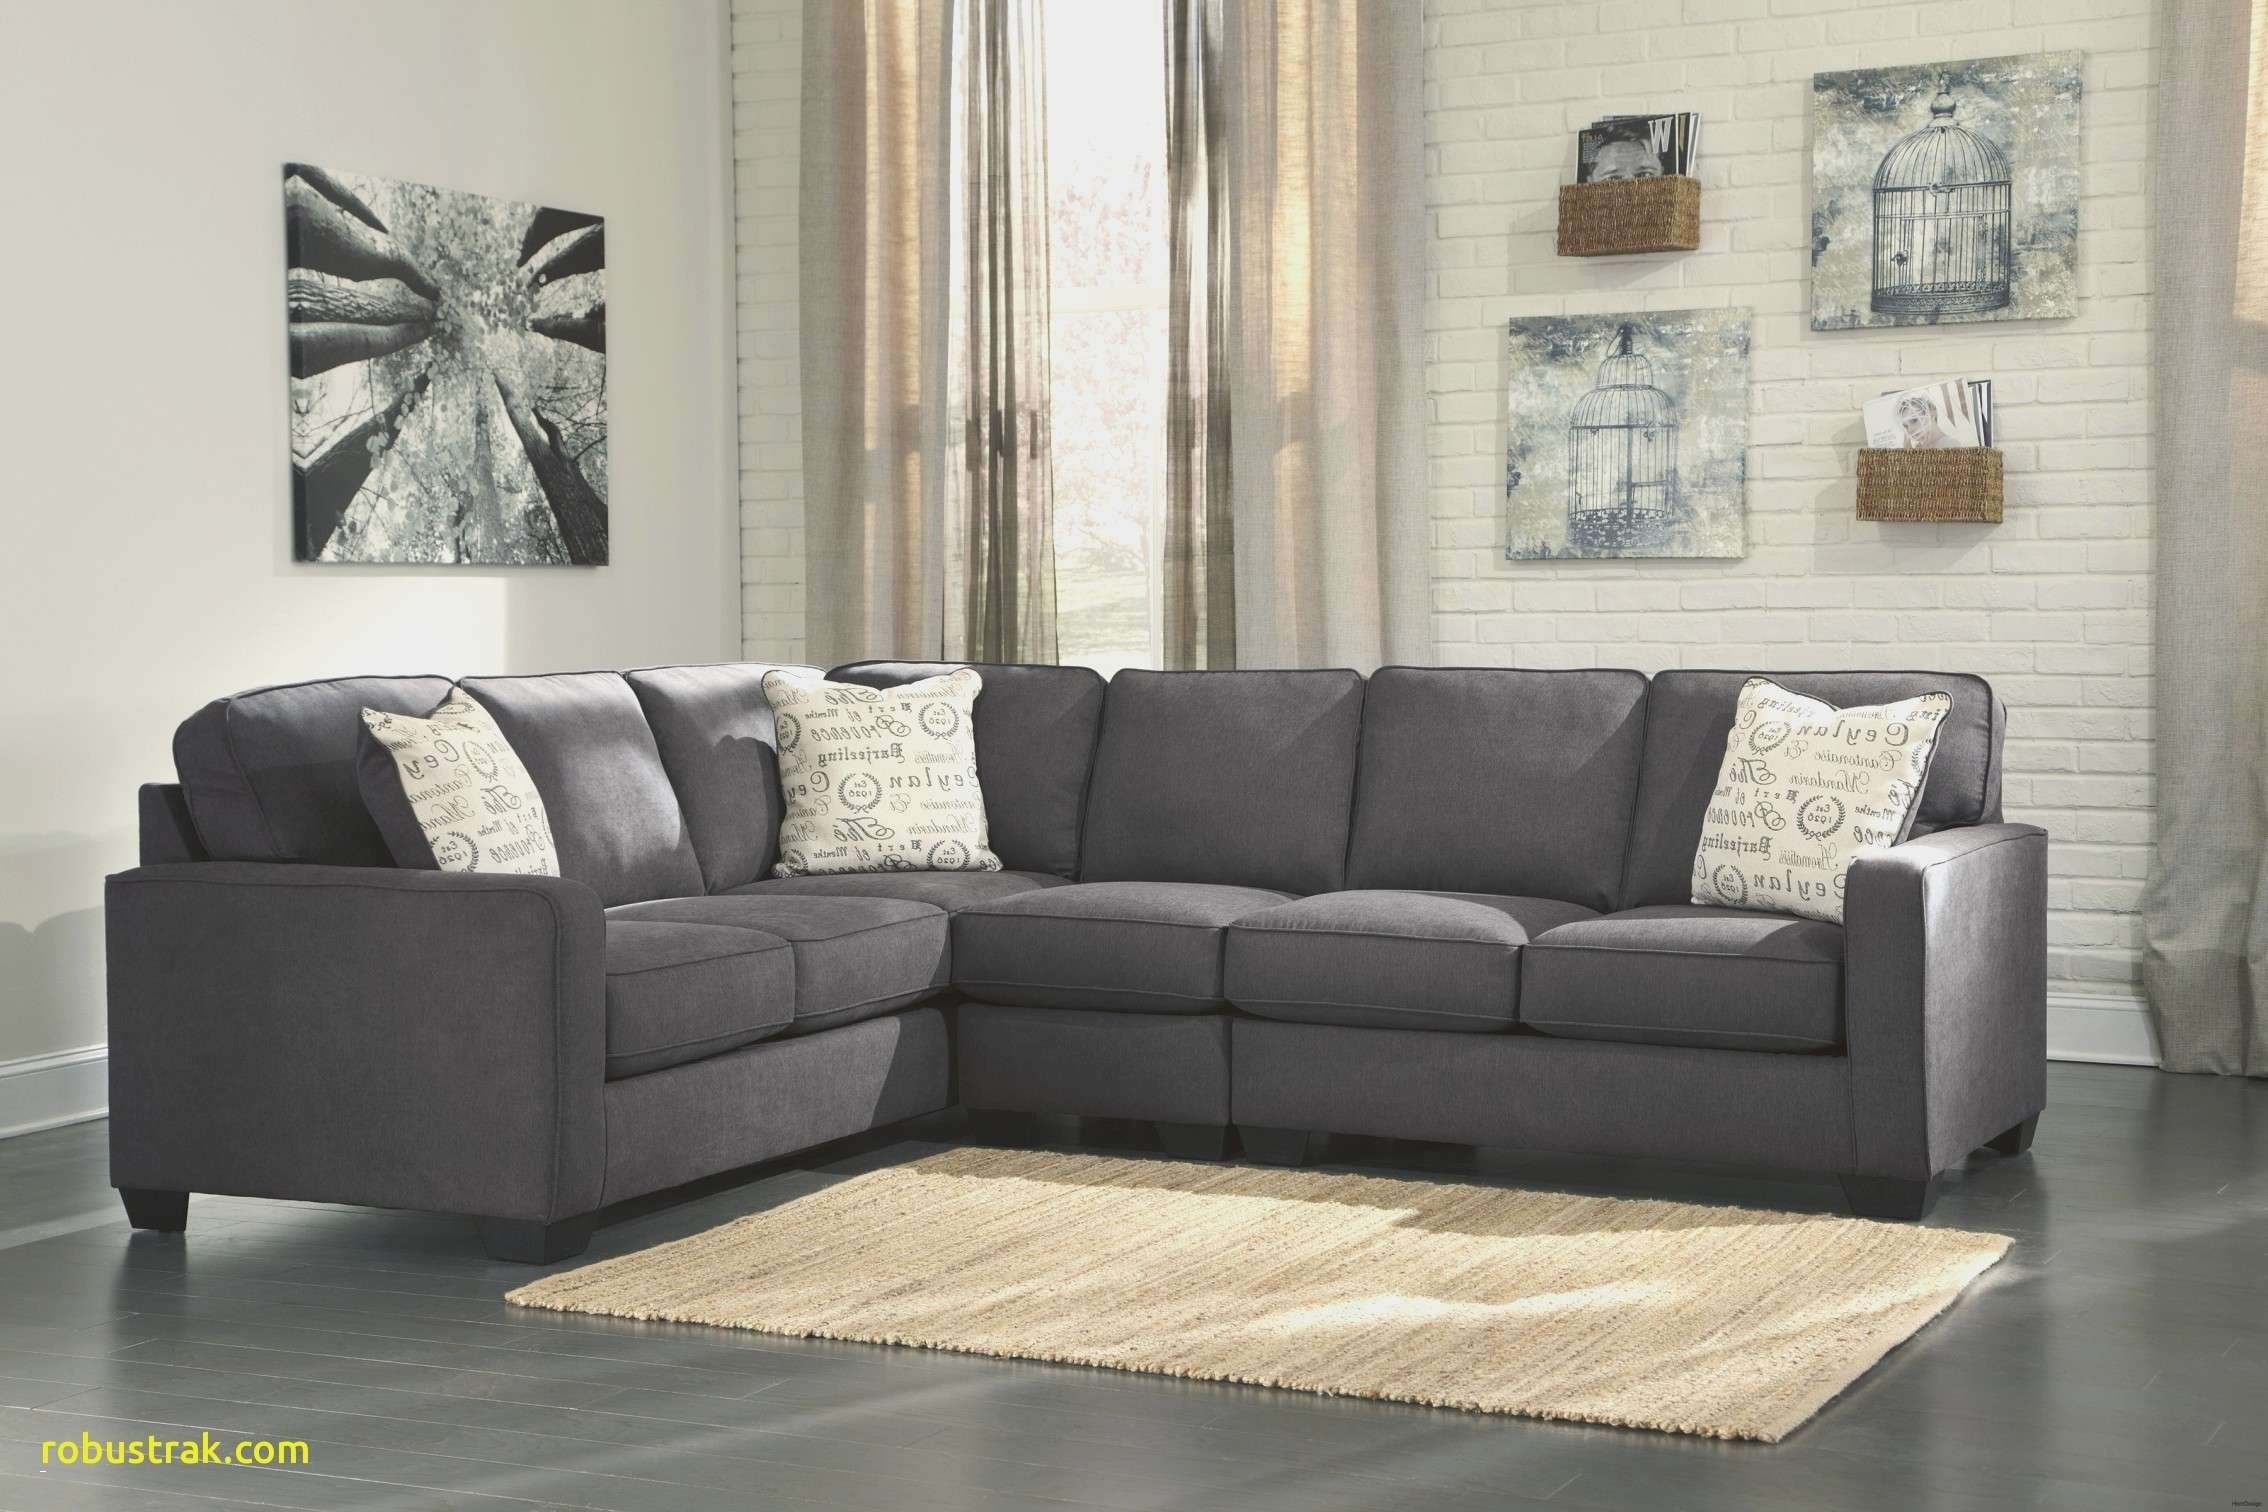 25 New Light Grey Sofa Pictures - Everythingalyce with regard to Aquarius Dark Grey 2 Piece Sectionals With Raf Chaise (Image 2 of 30)